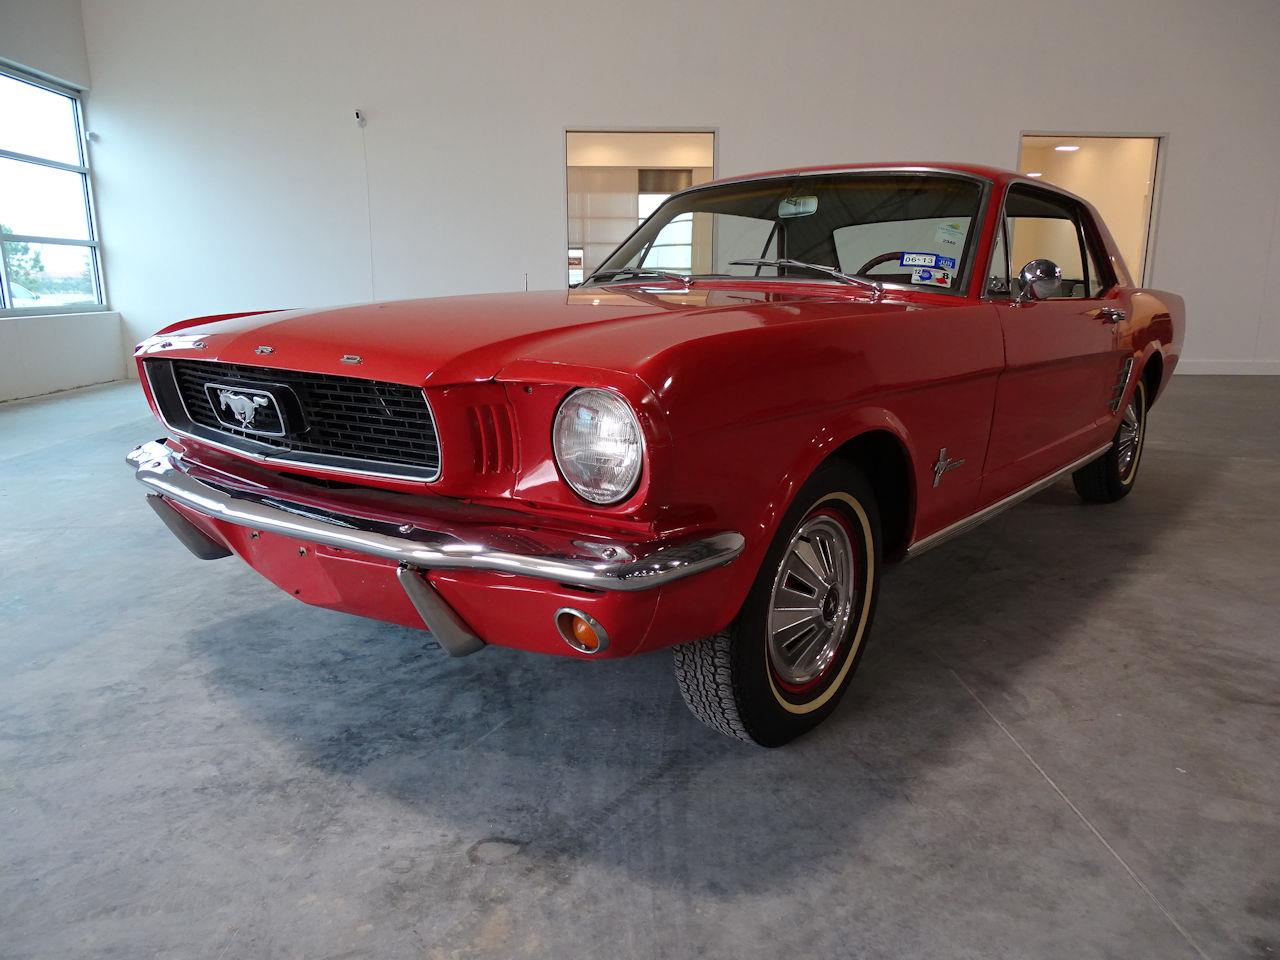 Large Picture of 1966 Mustang located in Houston Texas - $11,595.00 Offered by Gateway Classic Cars - Houston - MO4X